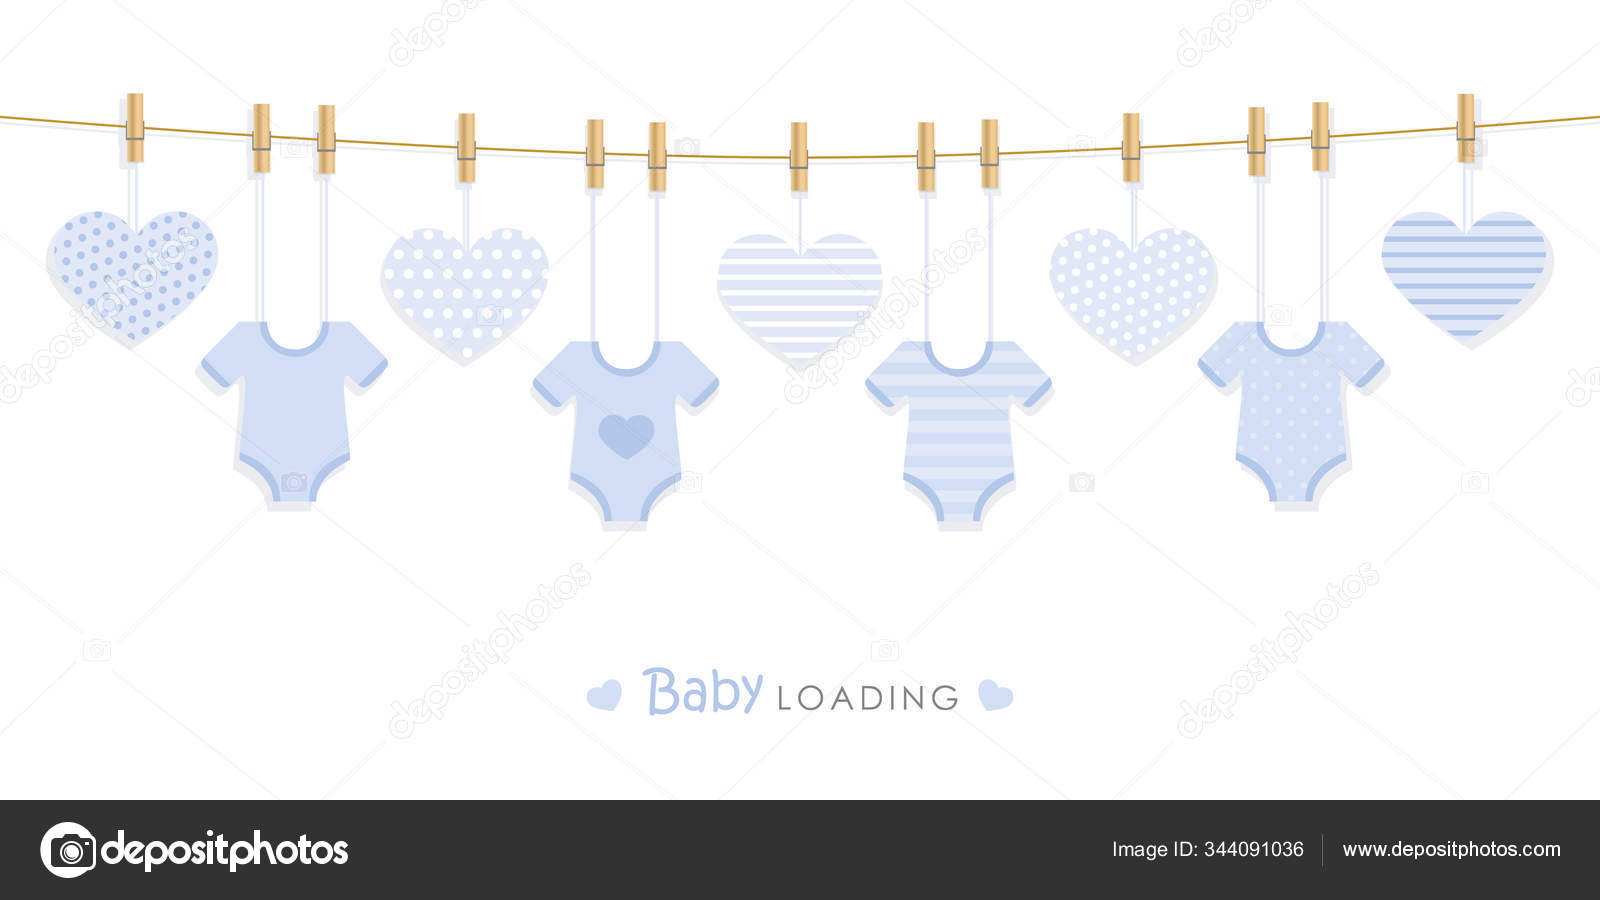 Baby Shower Welcome Greeting Card For Childbirth With Hanging Bodysuits Stock Vector C Krissikunterbunt 344091036